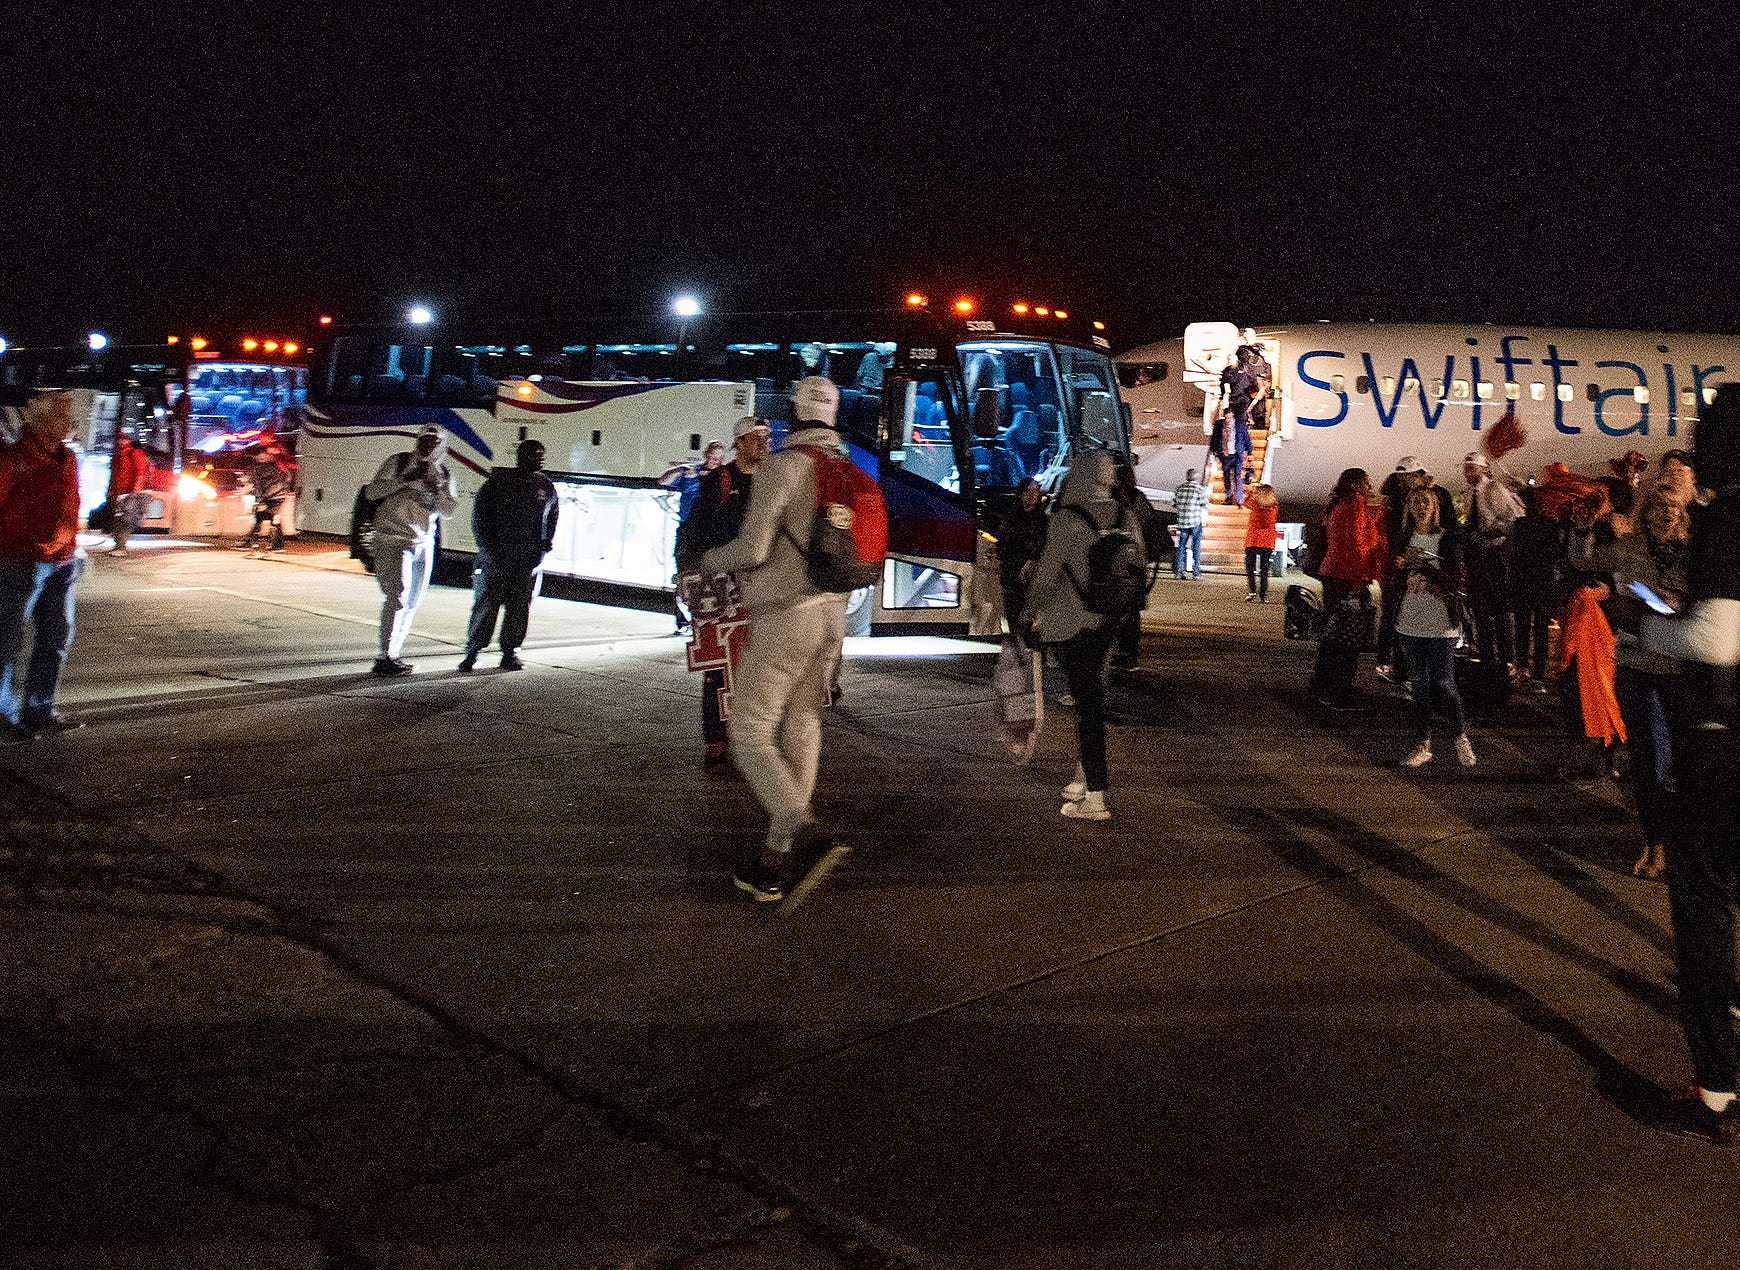 Players load onto buses as the Auburn men's basketball team arrives at the Montgomery, Ala., airport on Sunday evening March 31, 2019 after defeating Kentucky in Kansas City to advance to the NCAA Basketball Final Four next weekend.